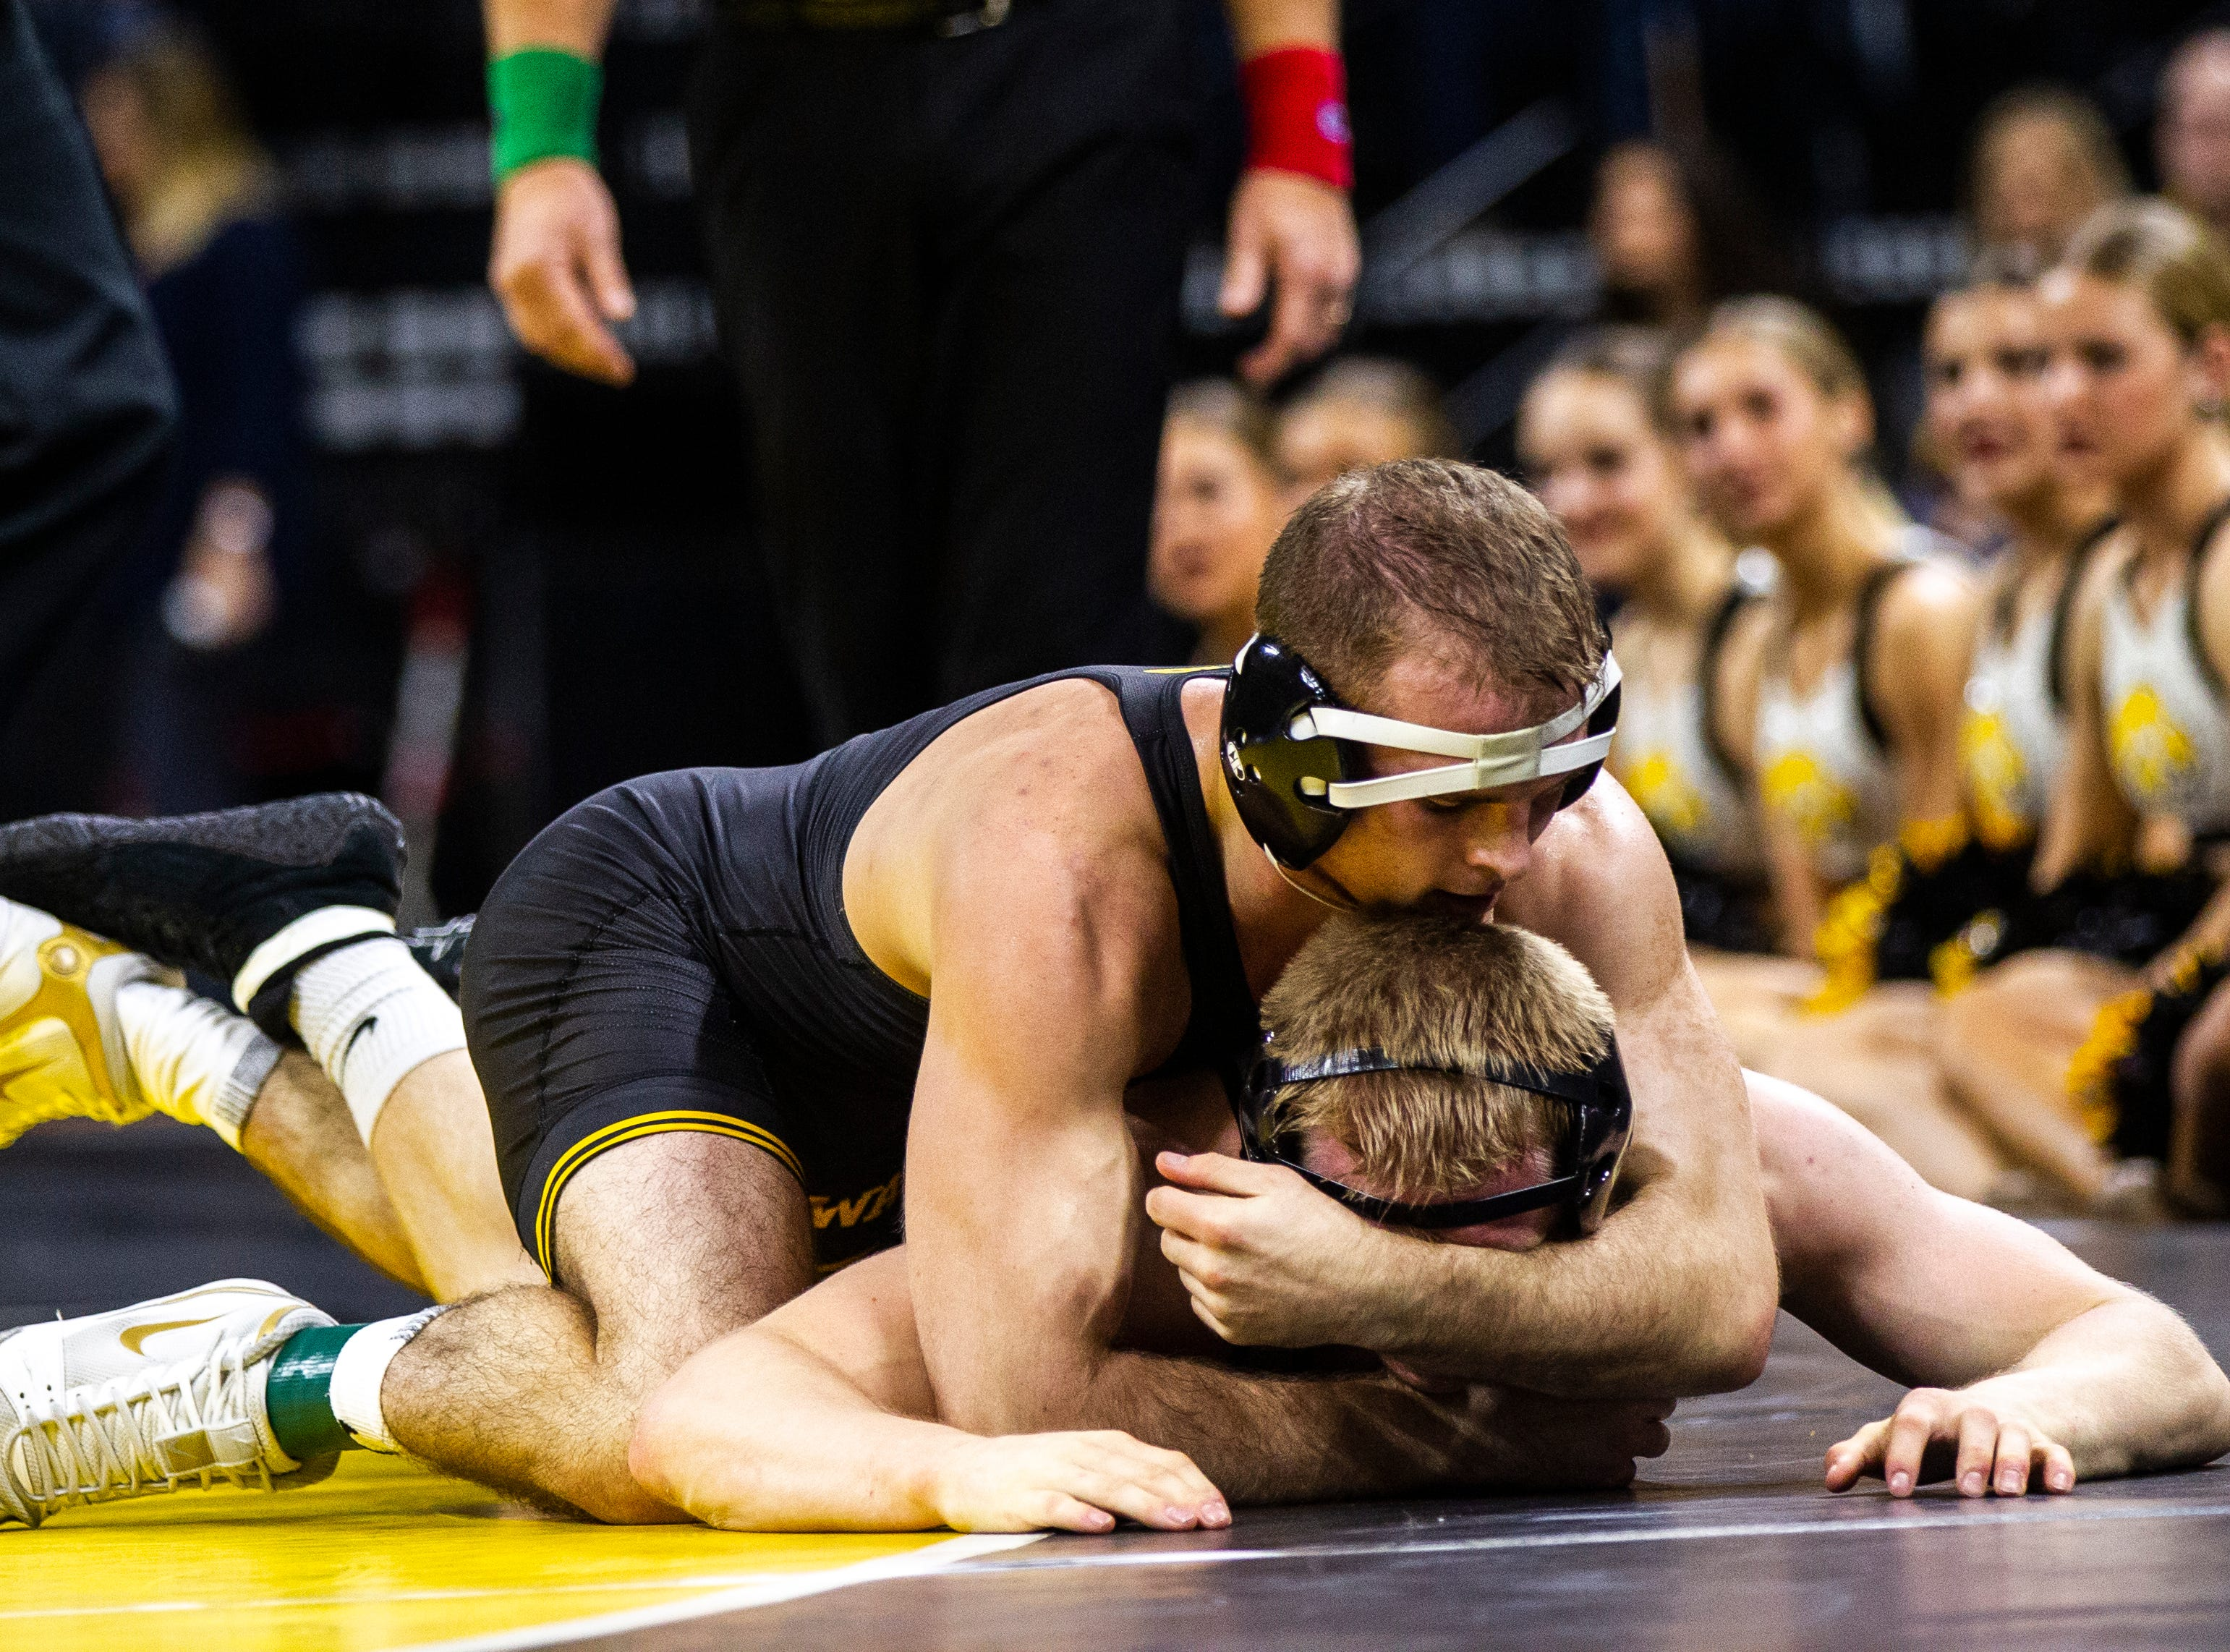 Iowa's Carter Happel (top) wrestles Purdue's Parker Filius at 149 during a Big Ten Conference NCAA wrestling dual on Saturday, Nov. 24, 2018, at Carver-Hawkeye Arena in Iowa City.